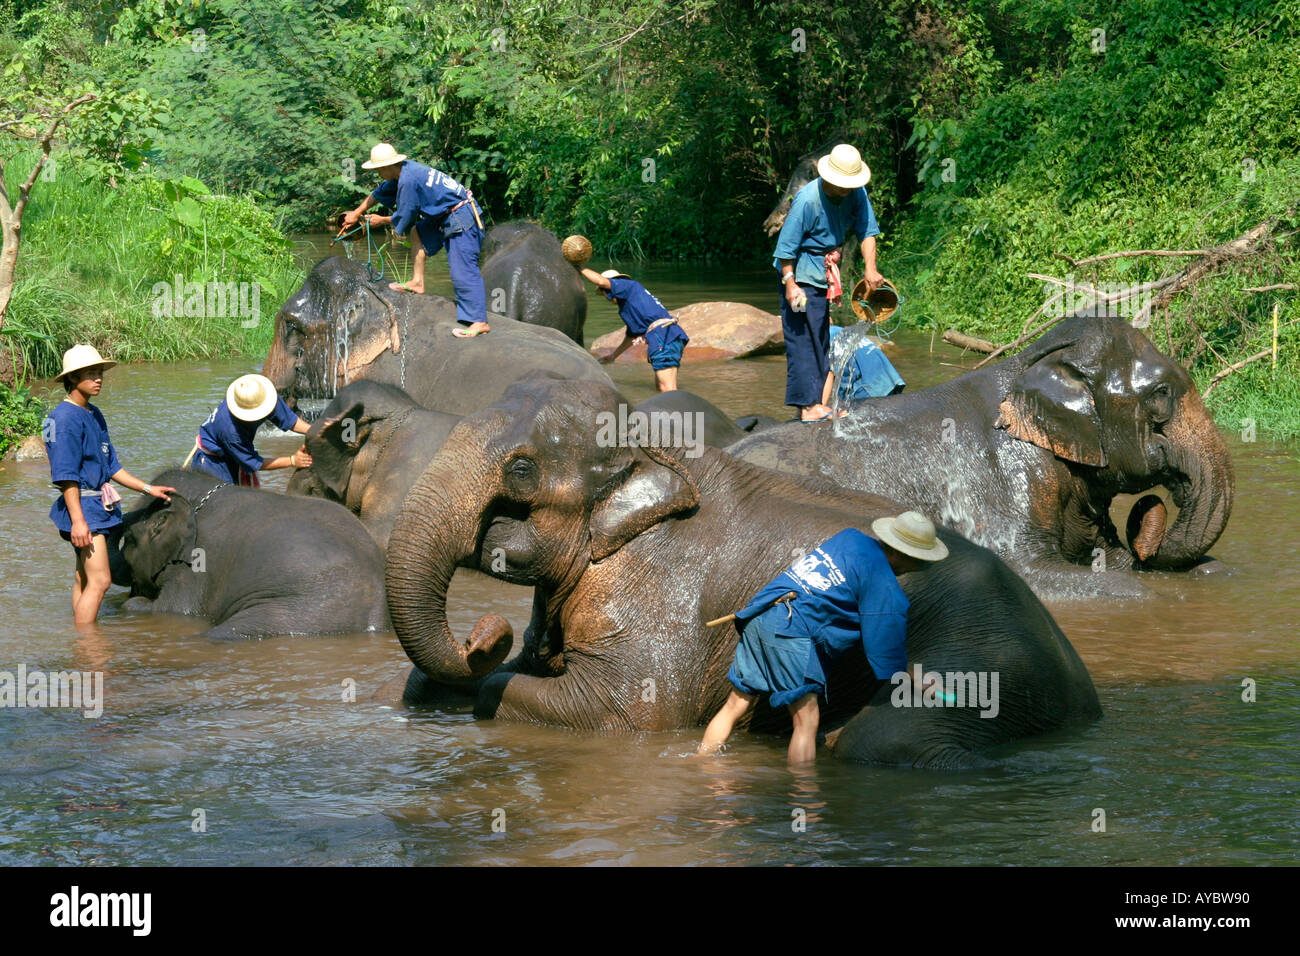 Mahouts washing their elephants in river, early morning at Mae Sa elephant training camp near Chiang Mai, Northern Thailand. - Stock Image